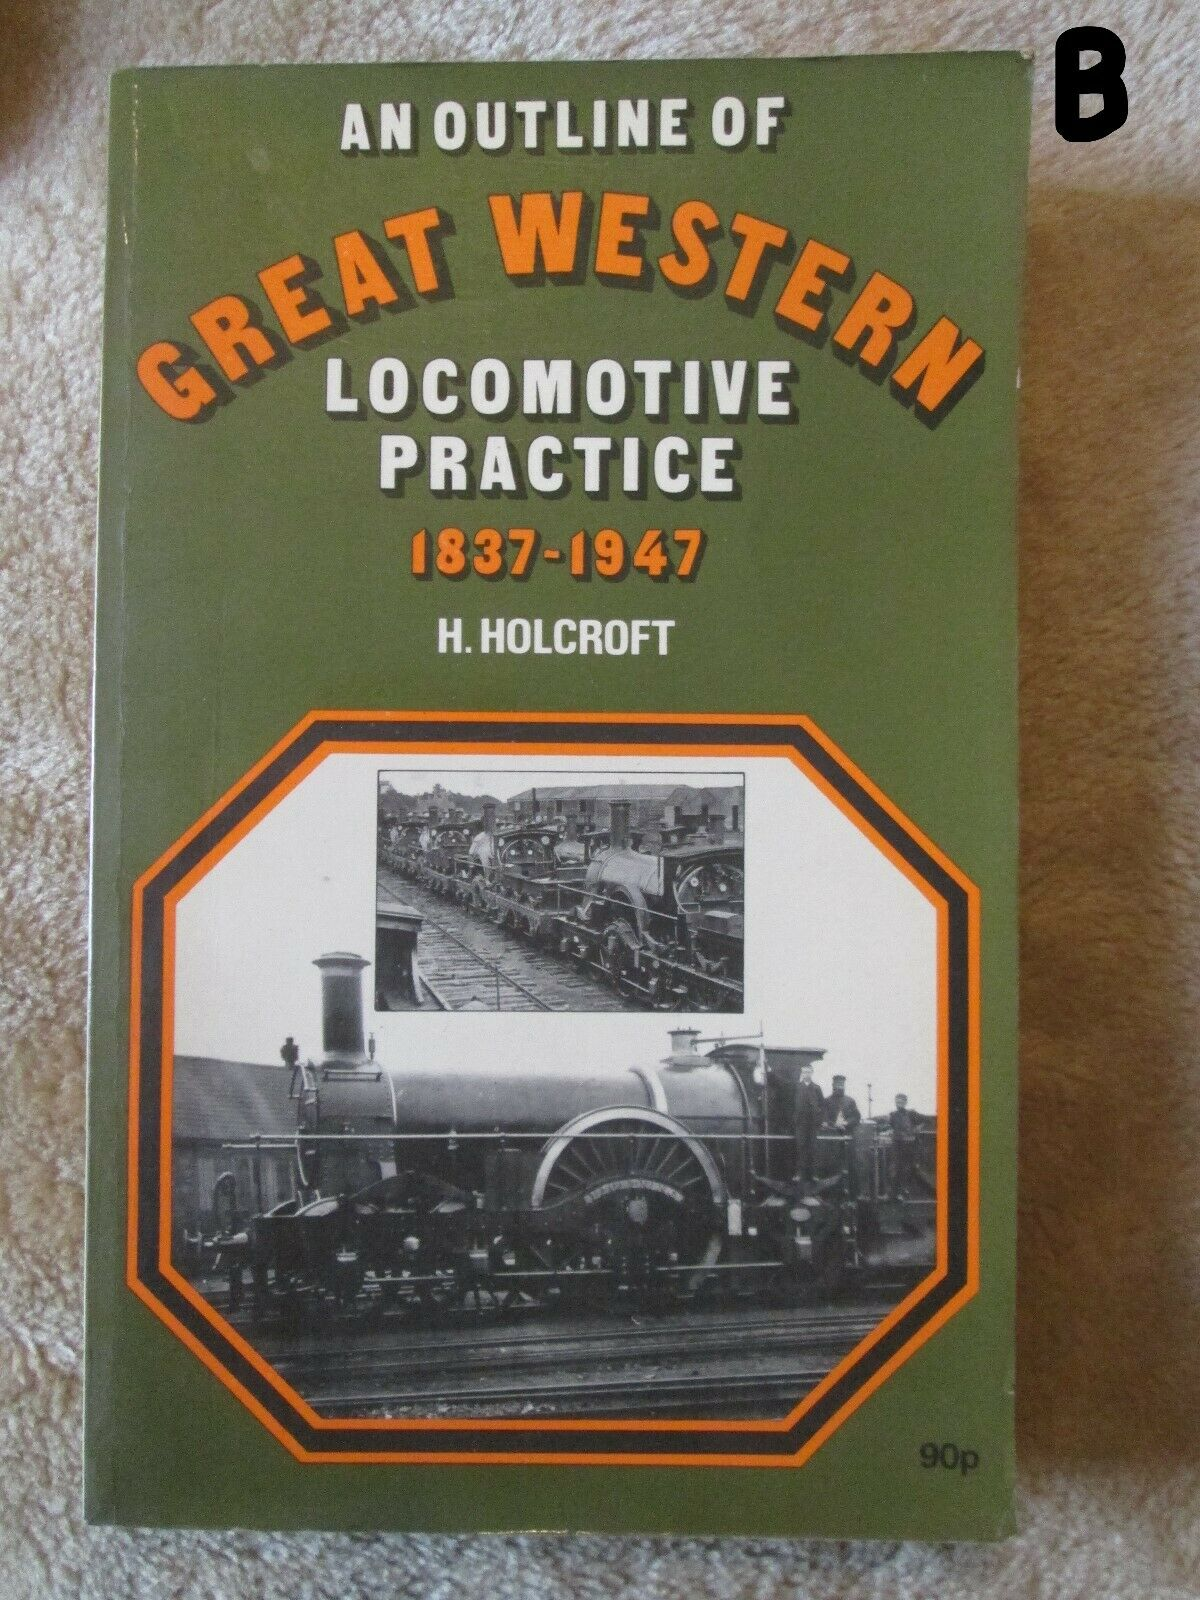 GREAT VINTAGE RAILWAY BOOK AN OUTLINE OF GREAT WESTERN LOCO PRACTICE 1837-1947